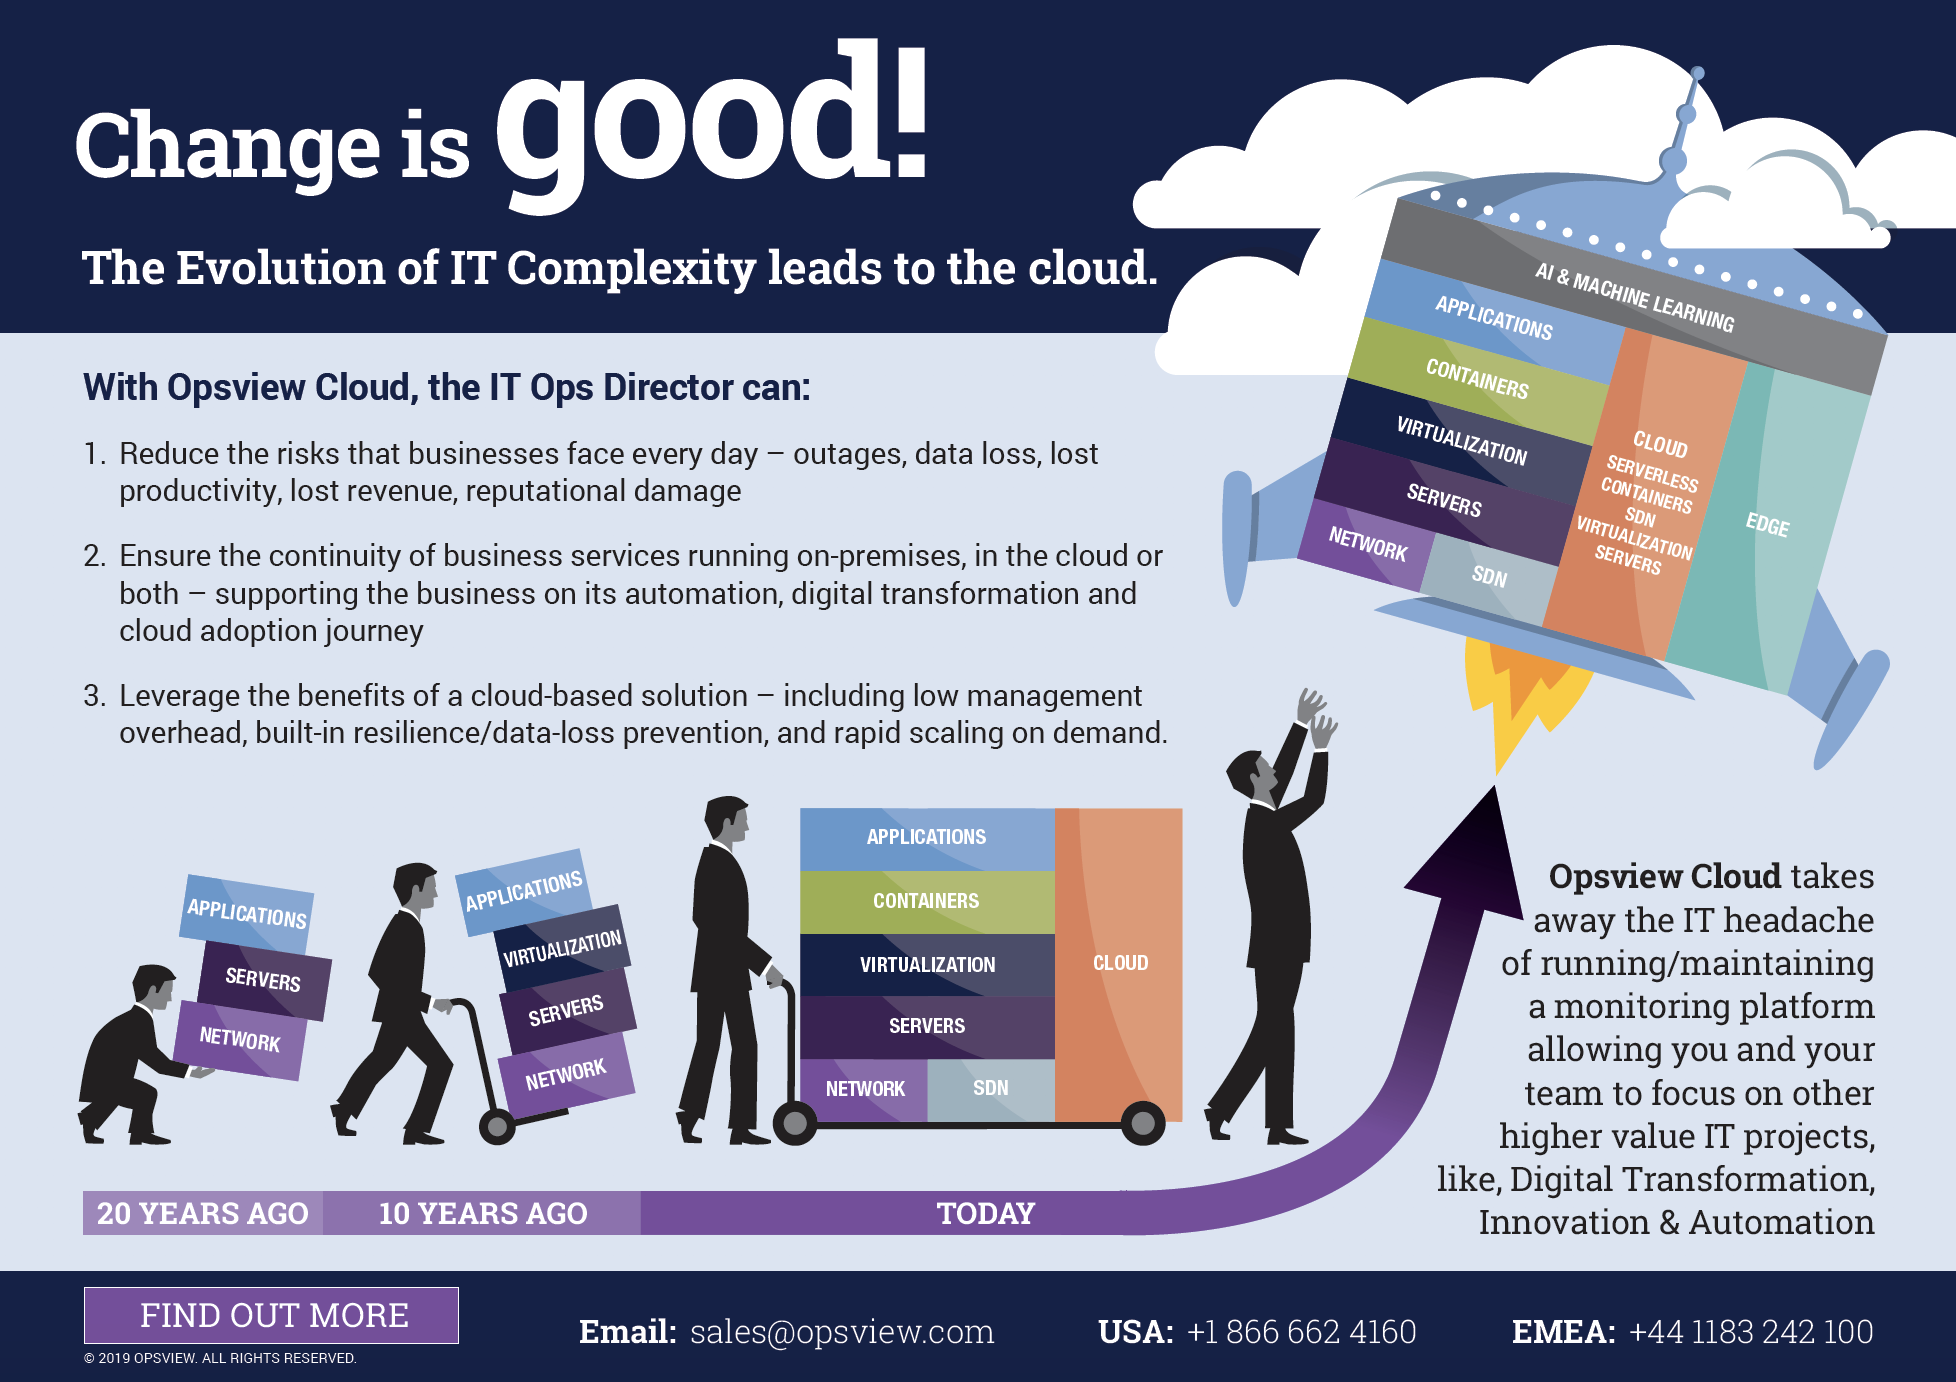 The Evolution of IT Complexity